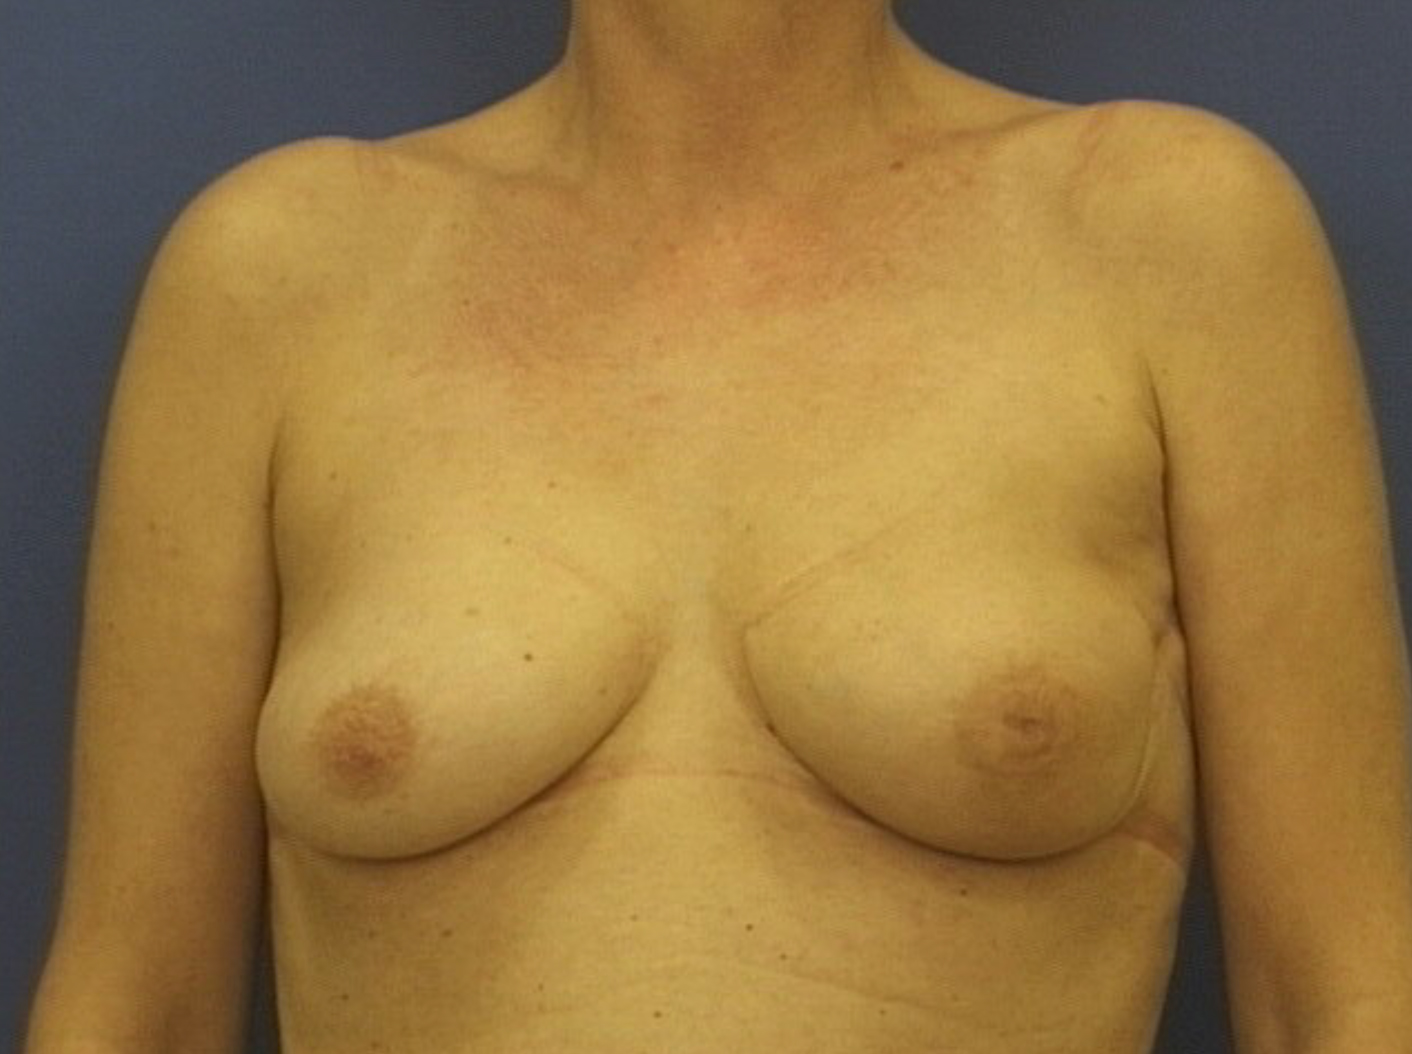 Breast-conserving surgery and radiotherapy